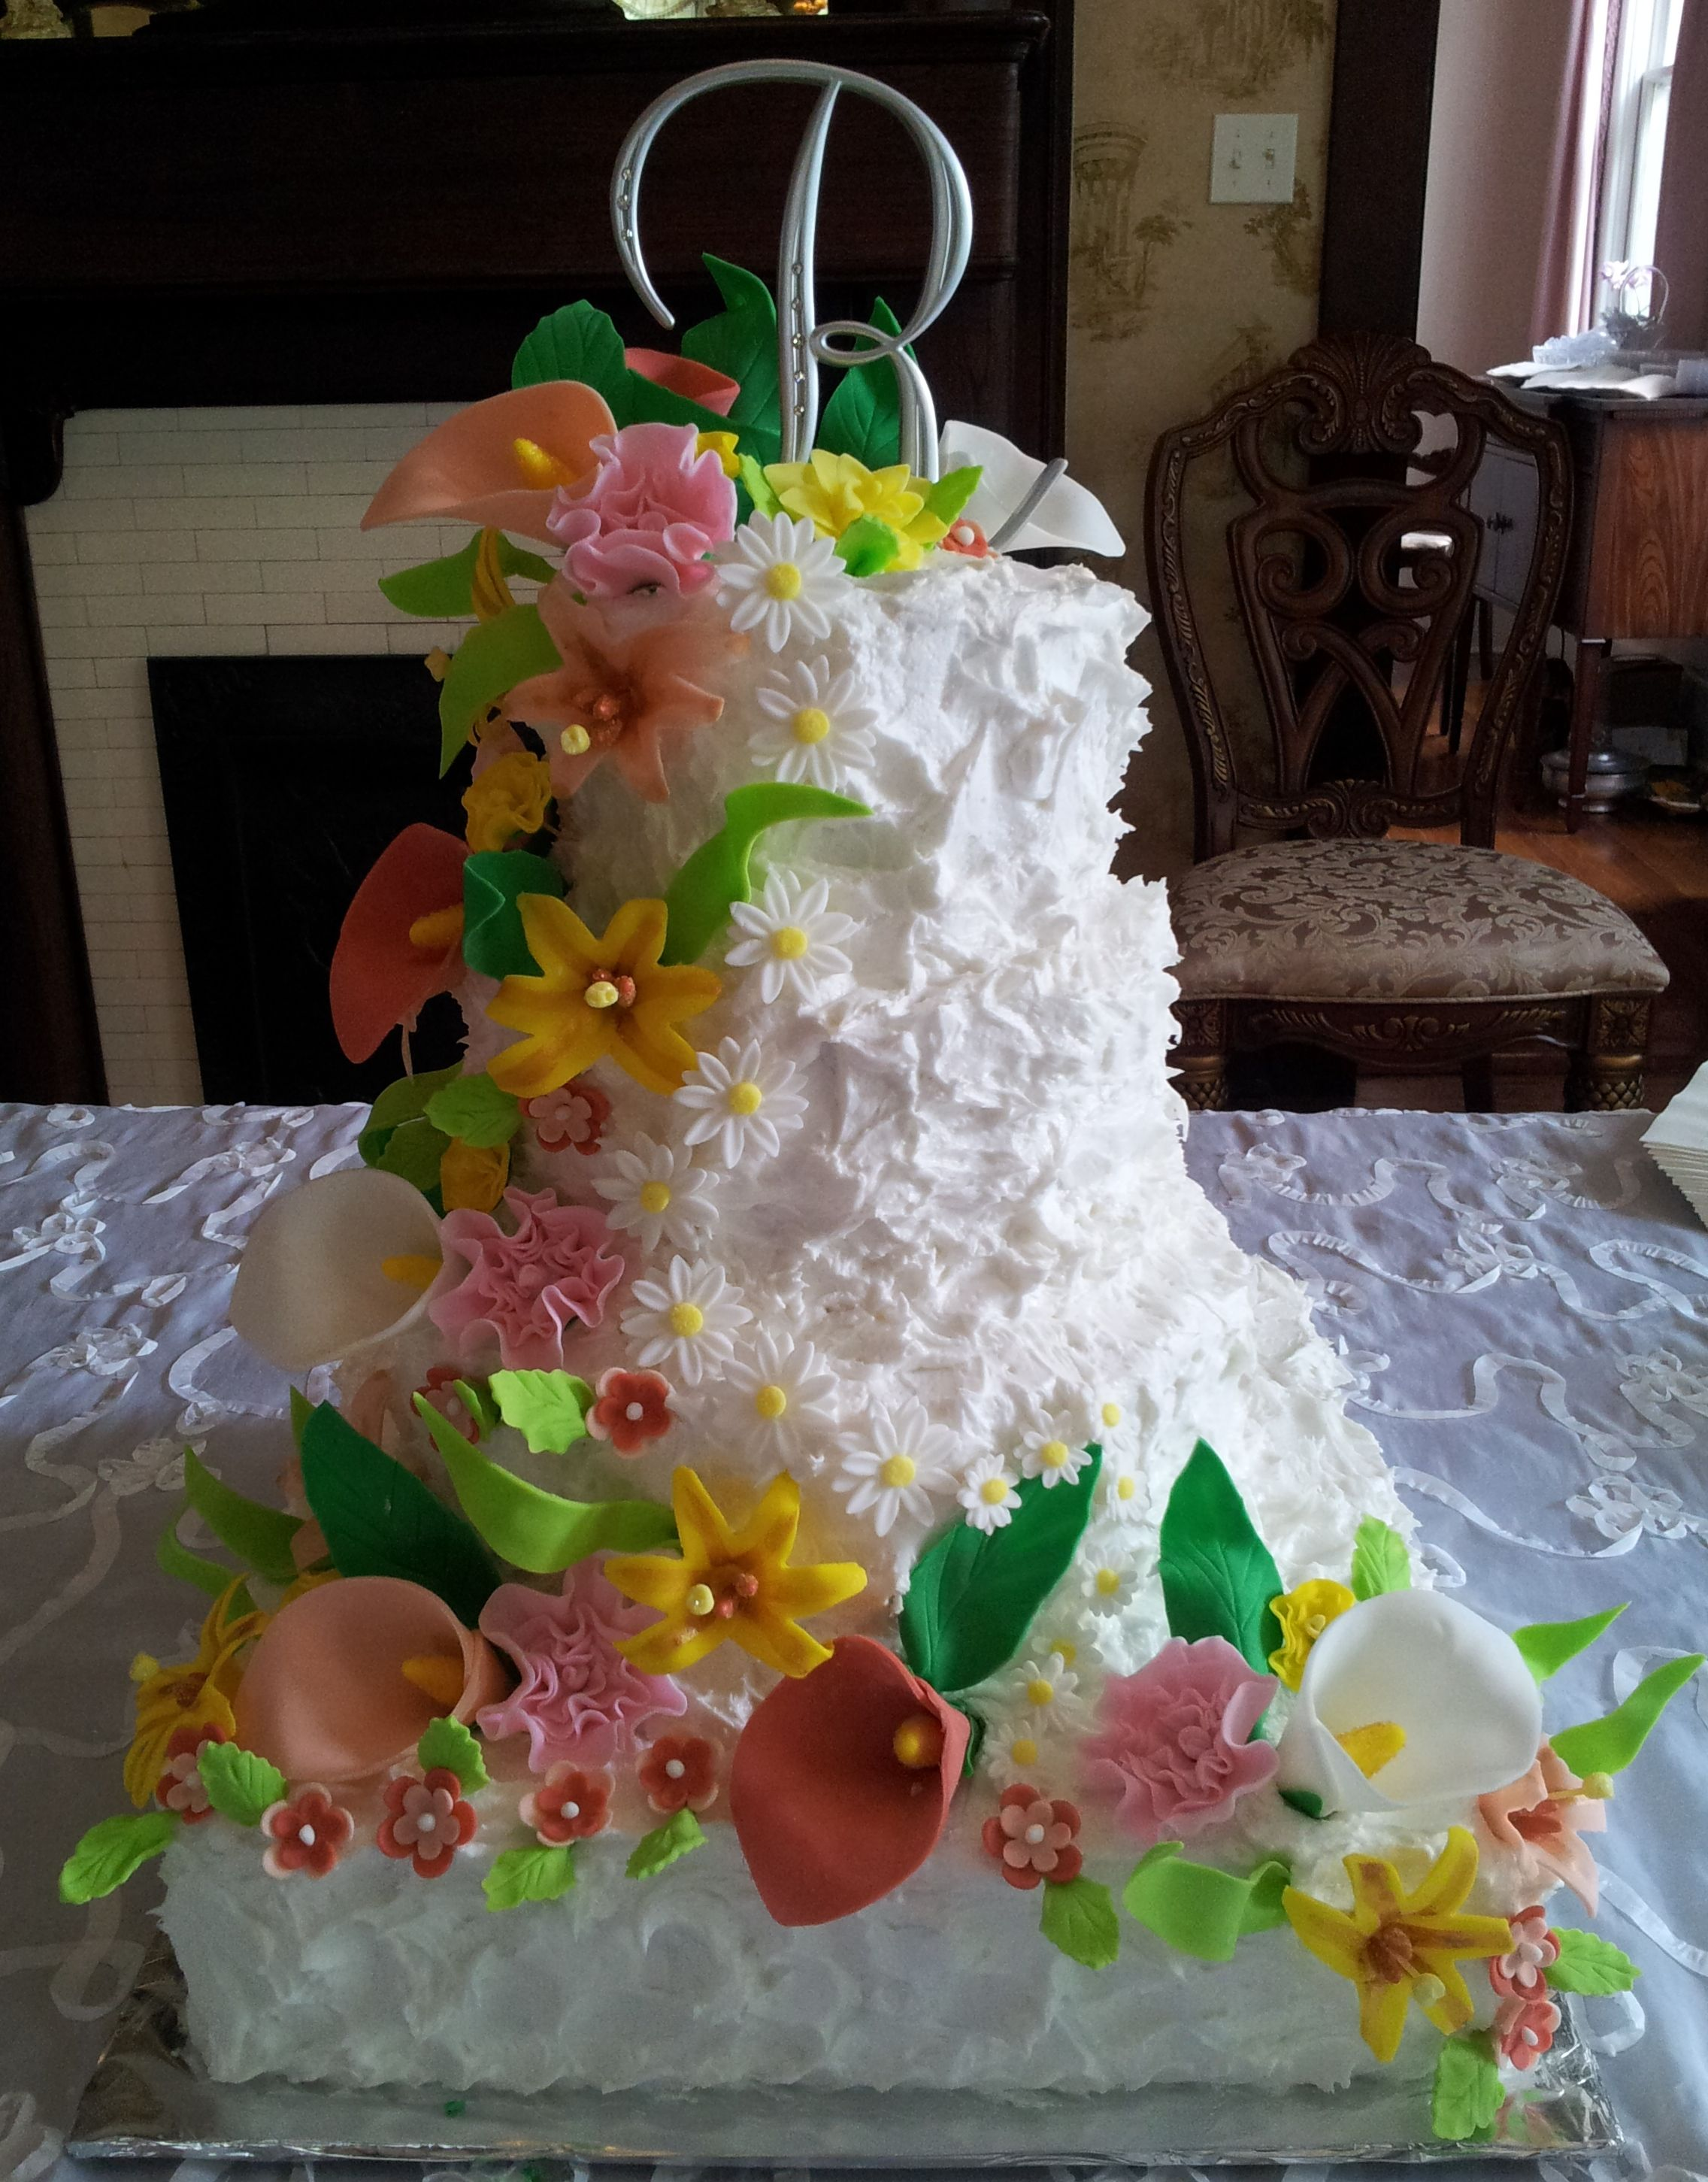 edible floral cake decorations